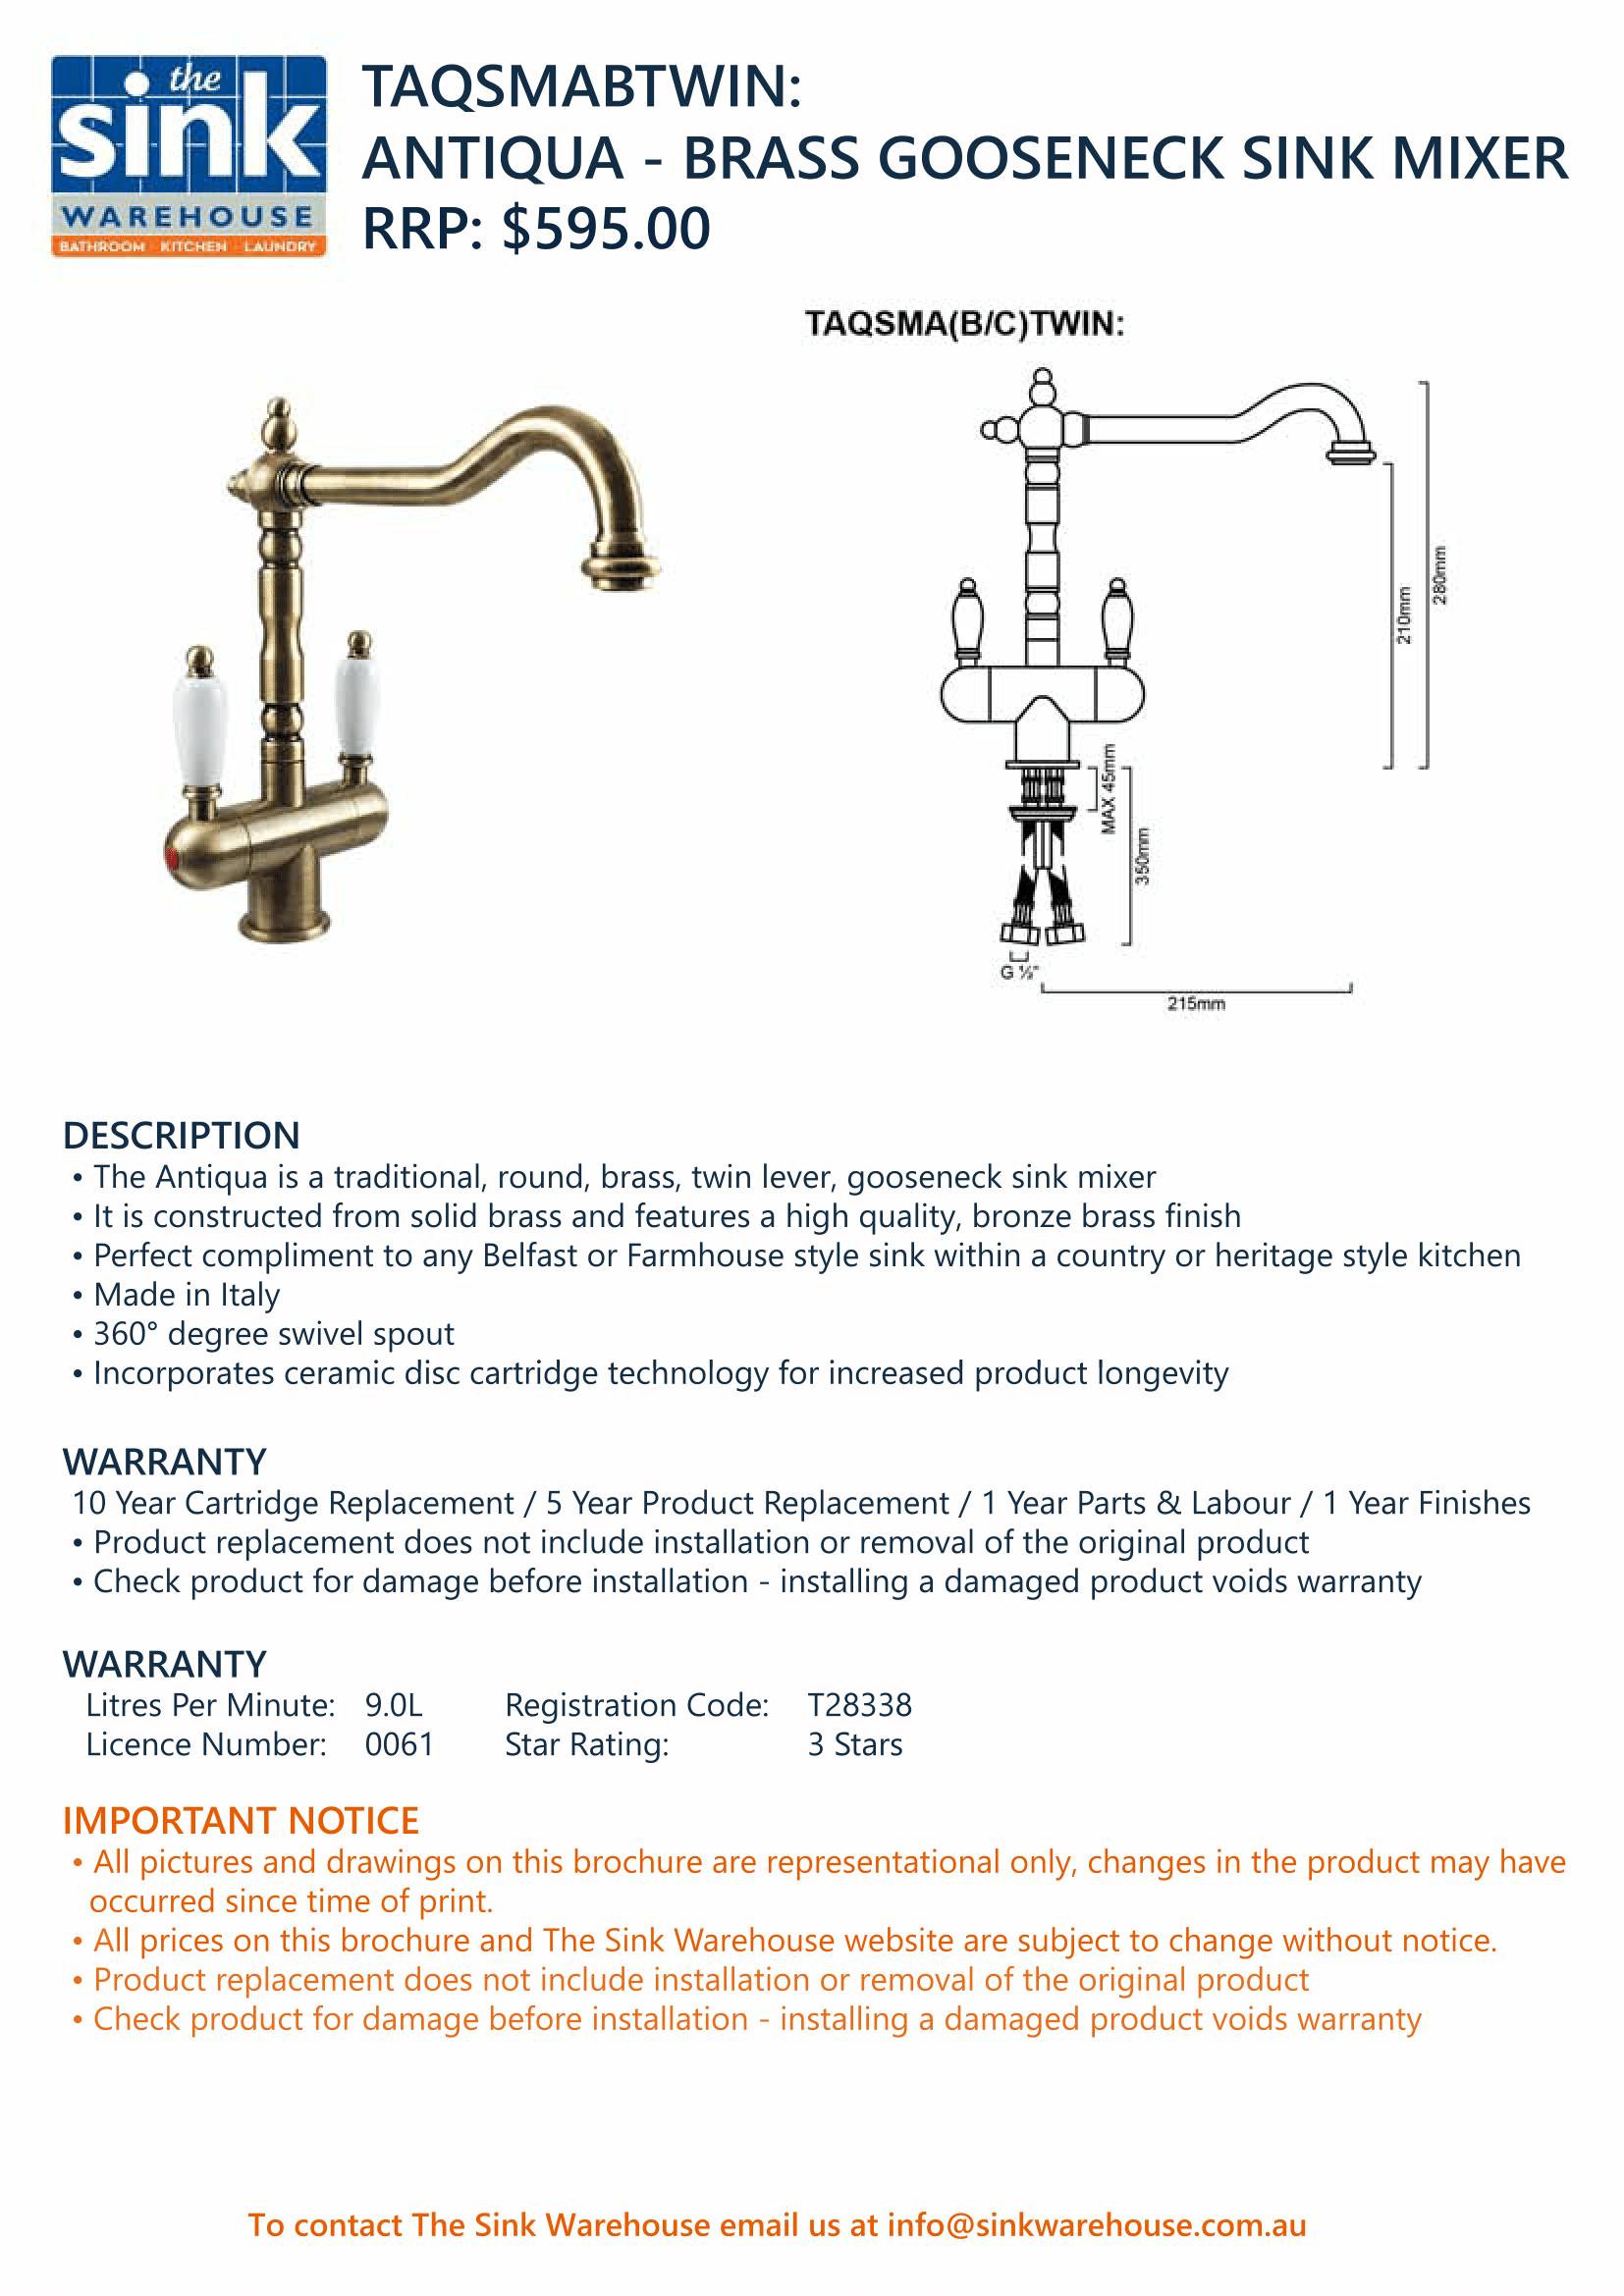 taqsmabtwin-product-spec-sheet-1.png